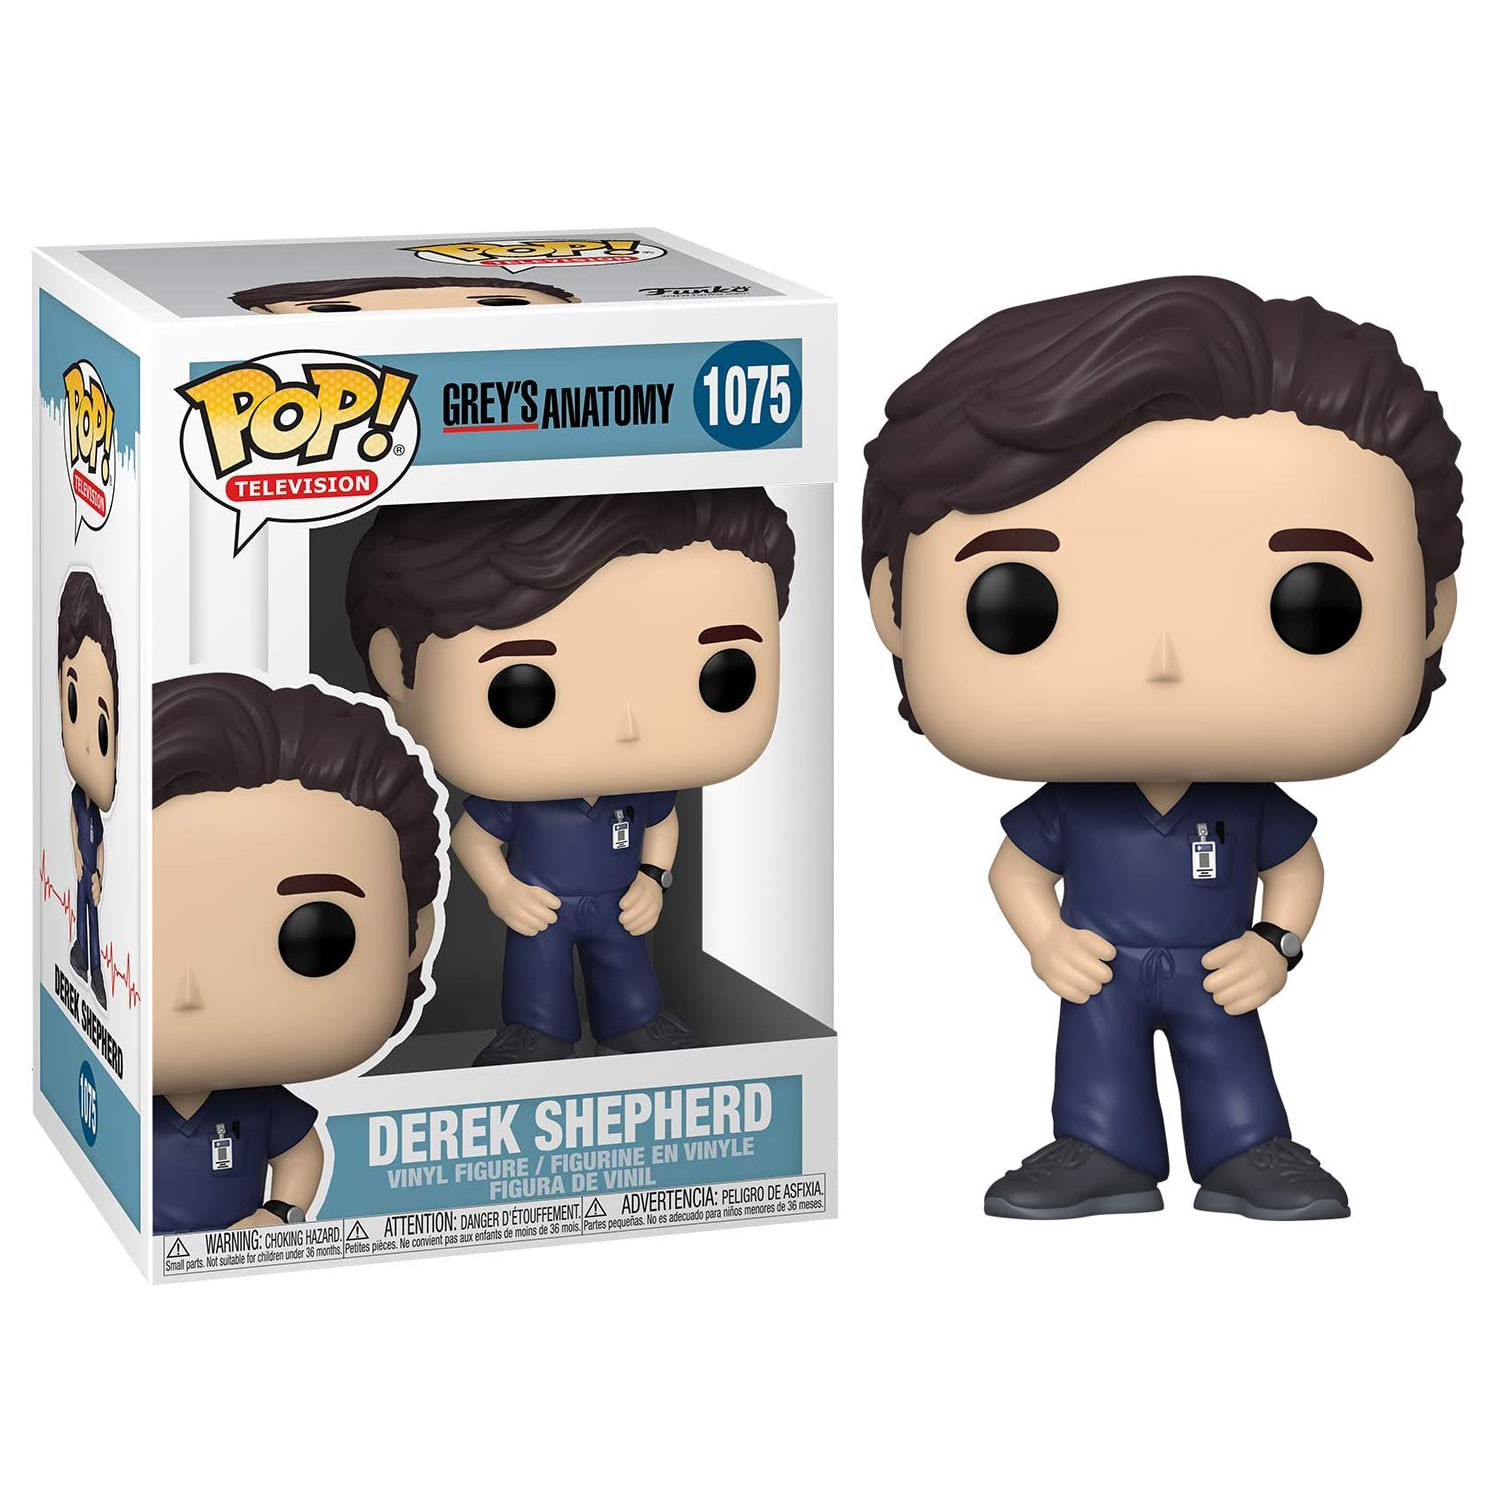 Grey's Anatomy Pop! Television Vinyl Figure - Derek Shepherd